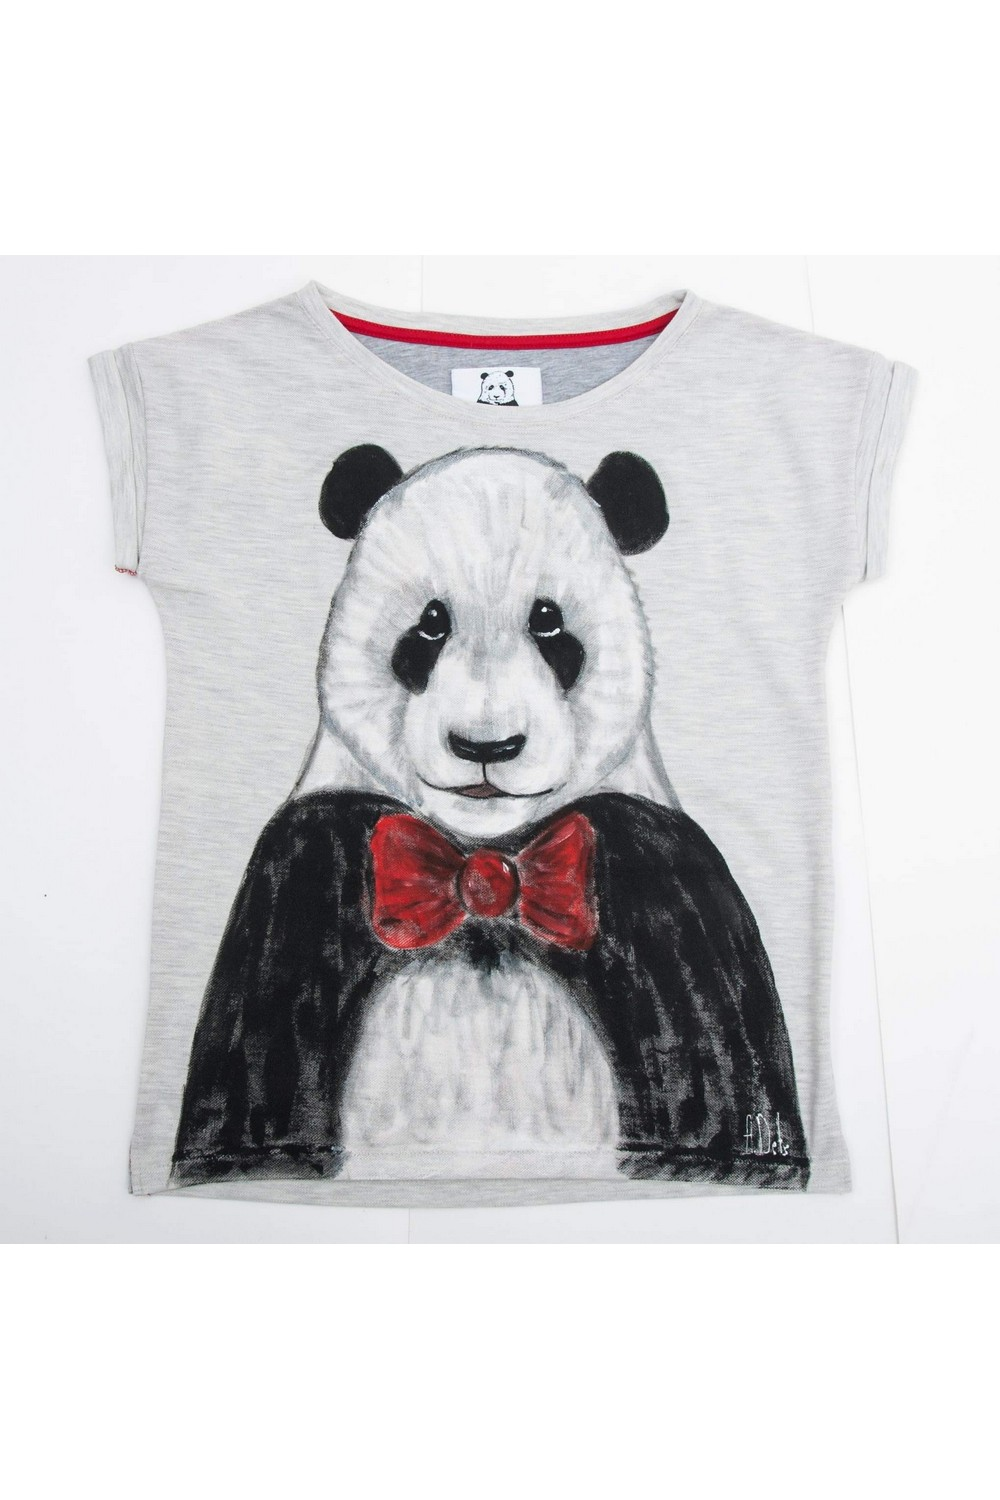 Buy Gray Cotton Short sleeve Print tee shirt , Panda tshirt, Unique stylish t shirt